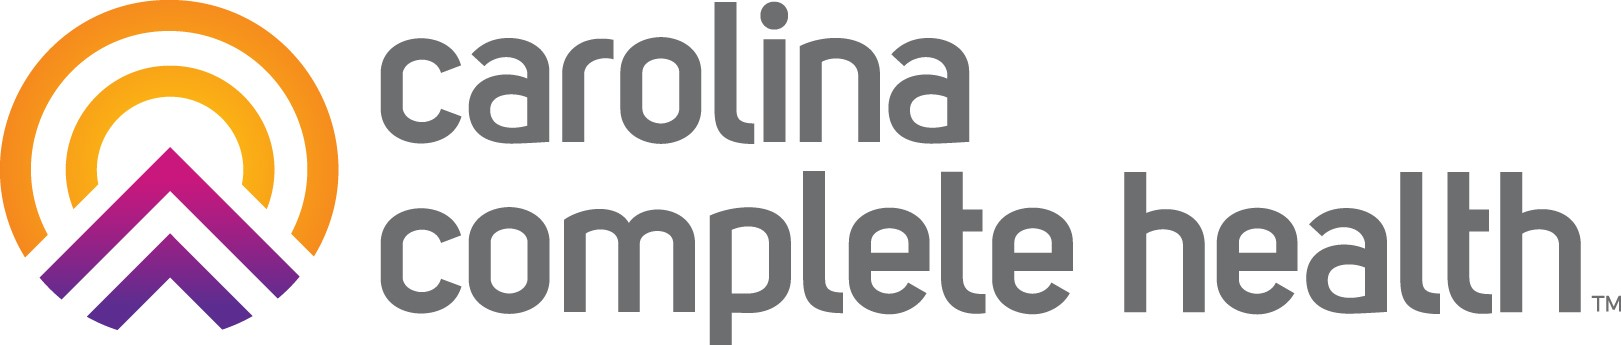 Medicaid Transformation News: Message from Carolina Complete Health